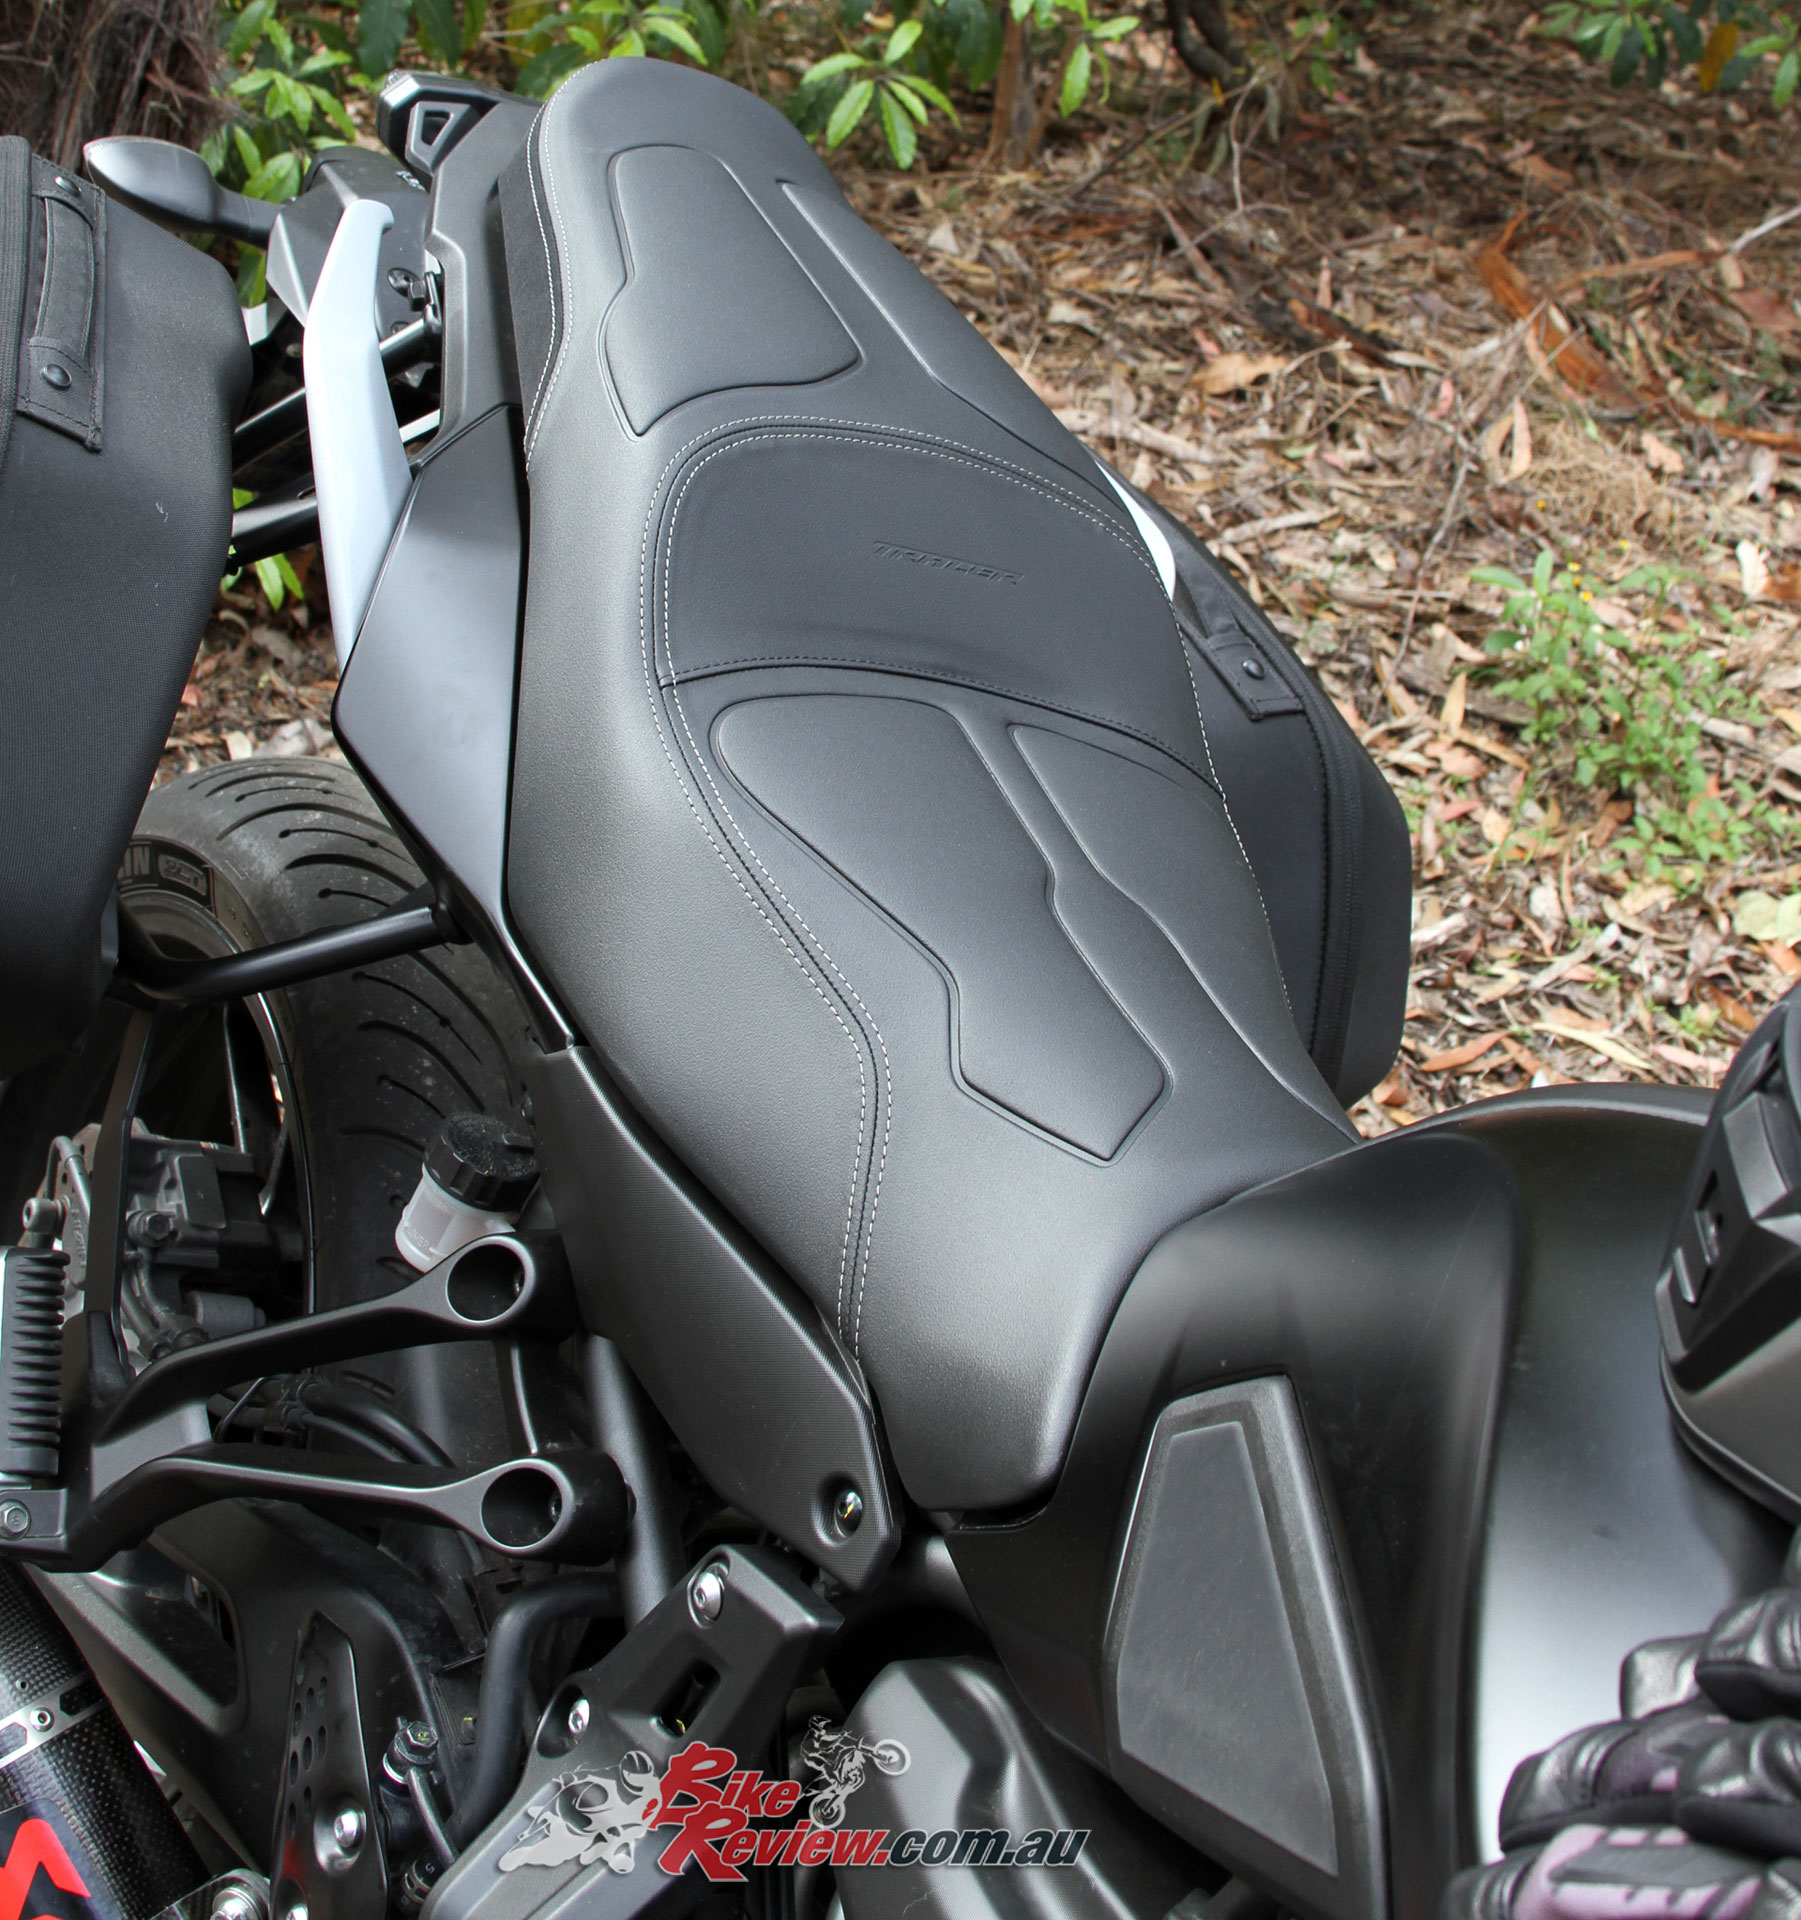 The Yamaha Comfort Seat fitted to the MT-07 Tracer